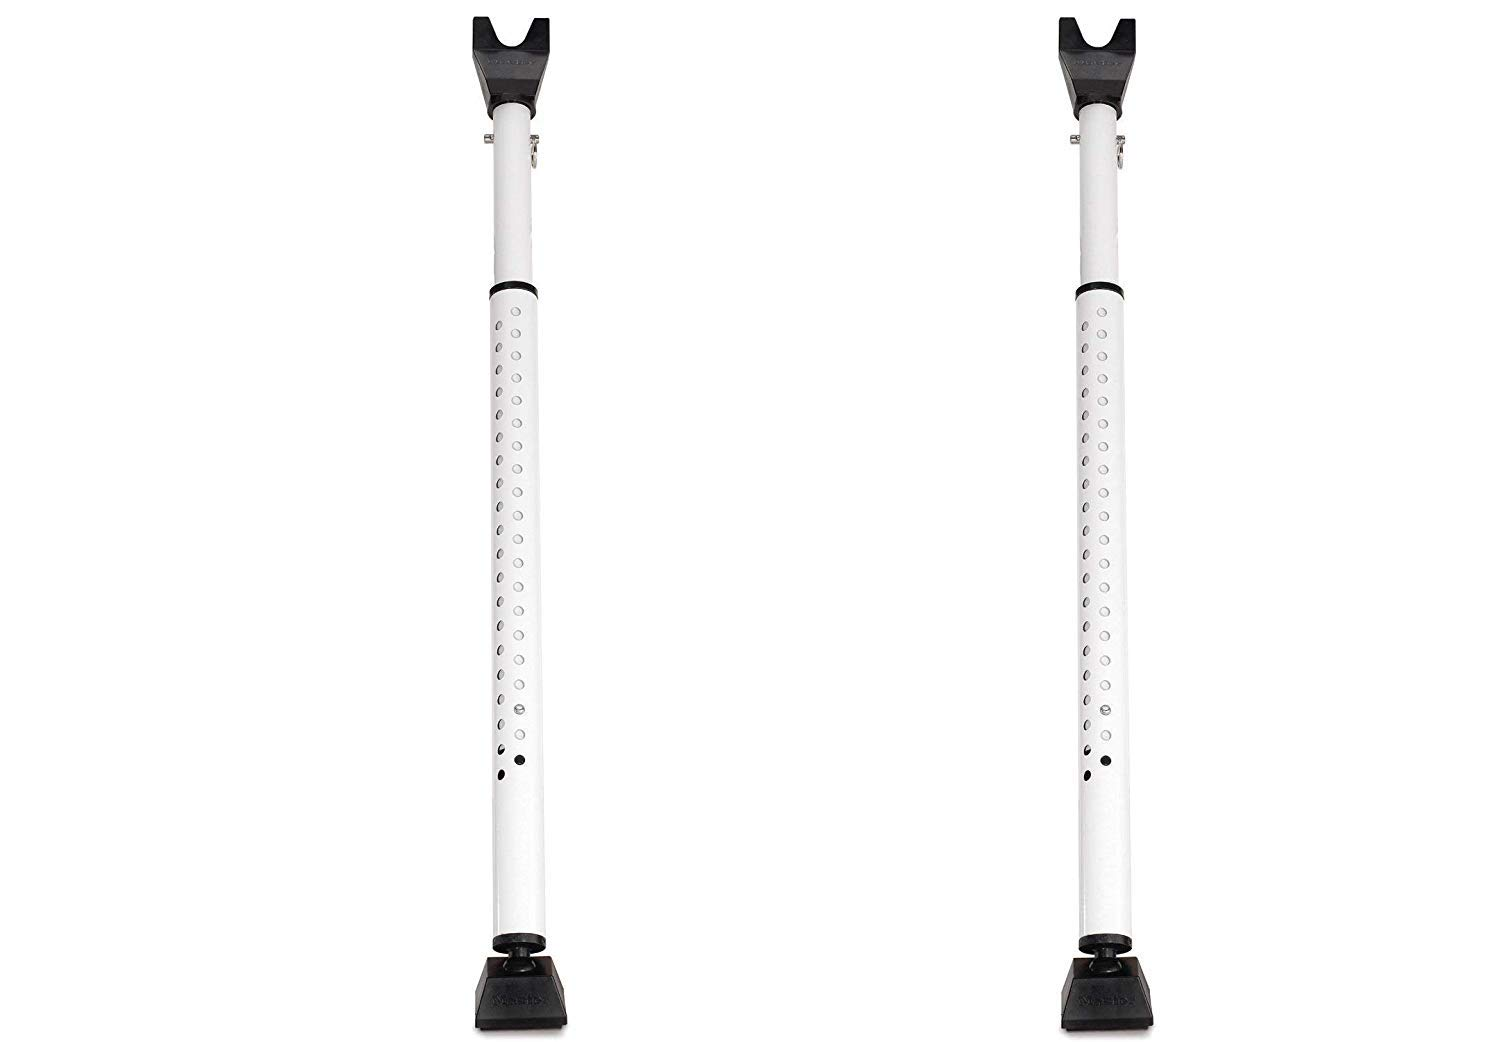 Master Lock 265D Door Security Bar, Adjustable from 27-1/2 in. to 44-1/2 in, White (Pack of 2)